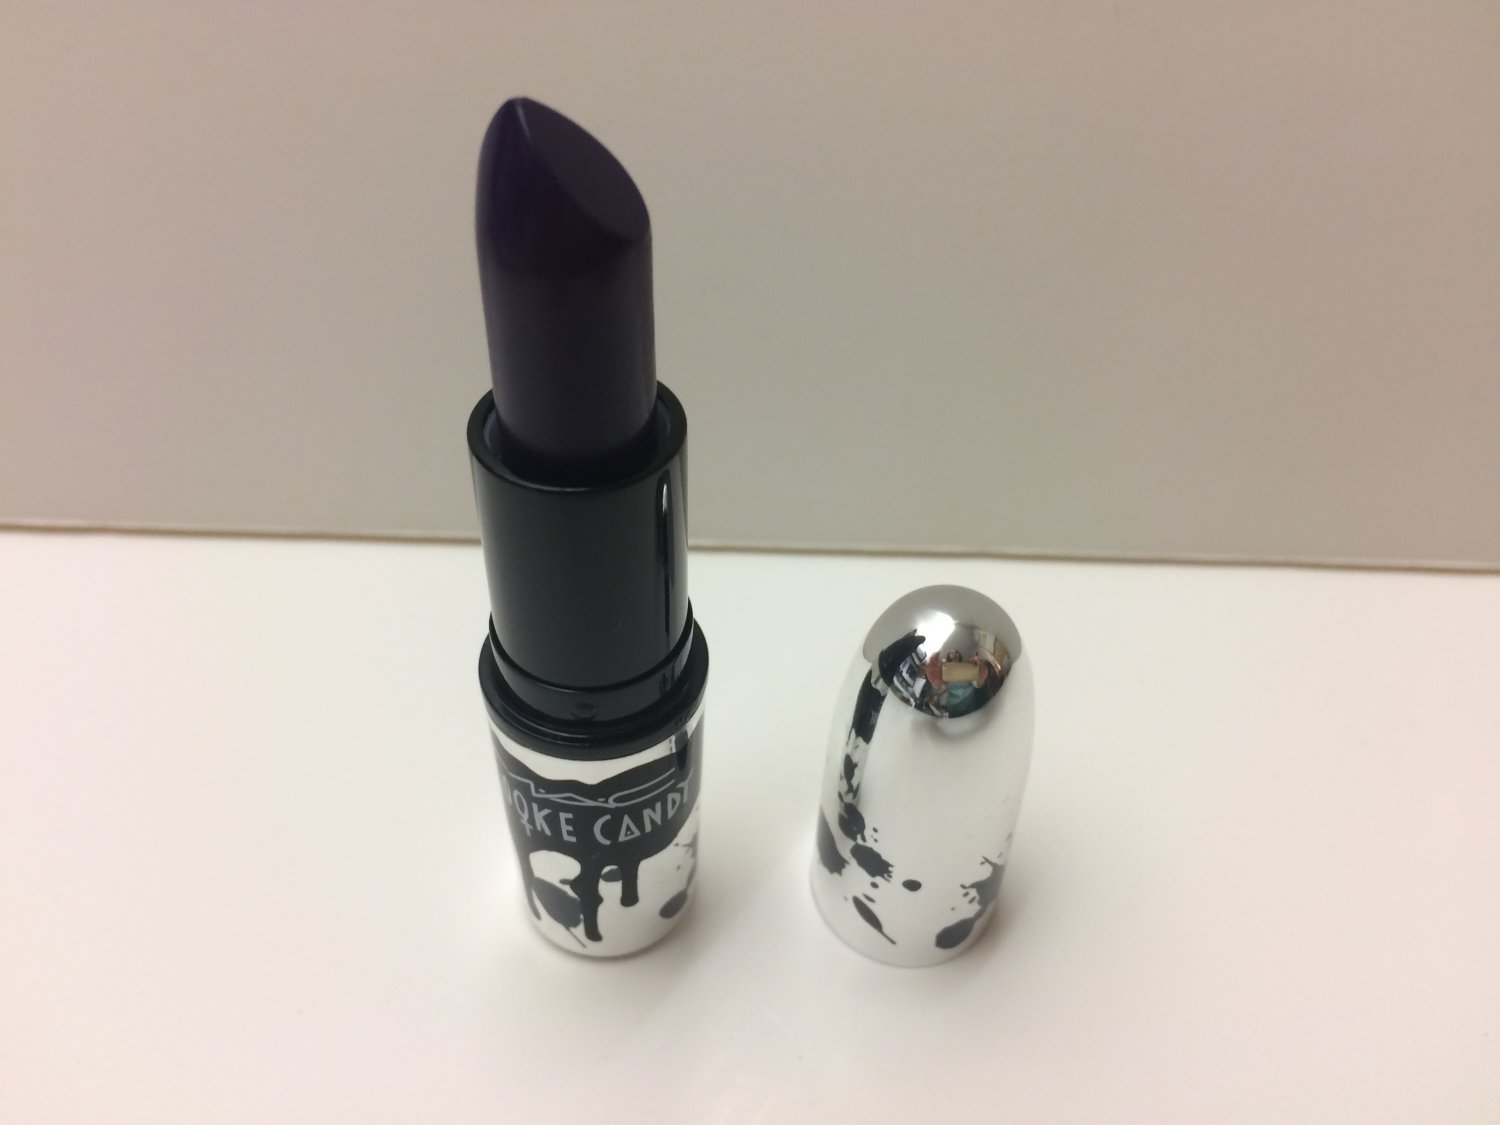 MAC Brooke Candy Lipstick - Witching Hour   (Unboxed)